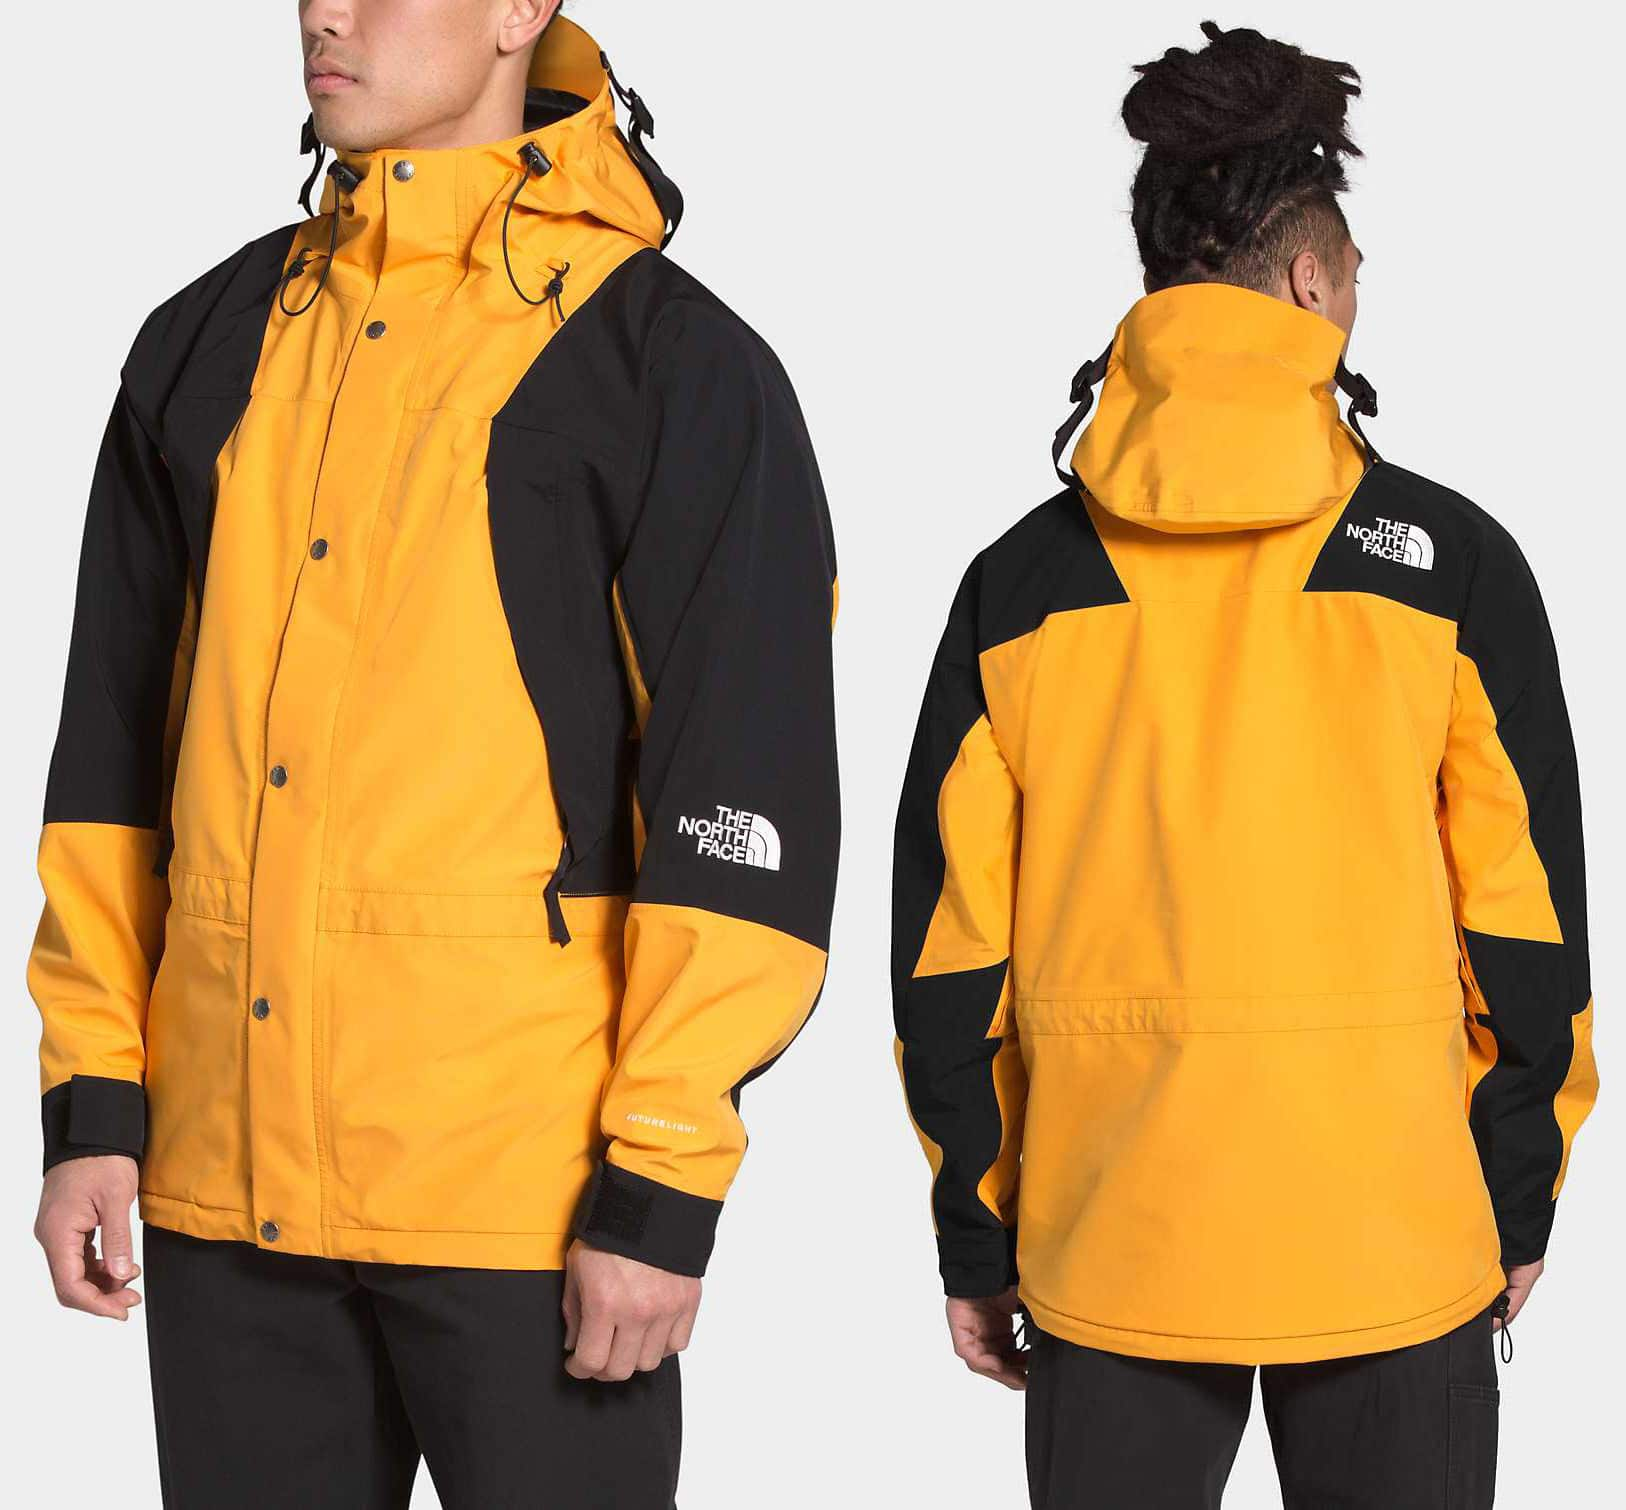 Considered a streetwear icon, the 1994 Retro Mountain Light rain jacket has been updated with FutureLight fabric technology, offering top-level breathability and waterproofing